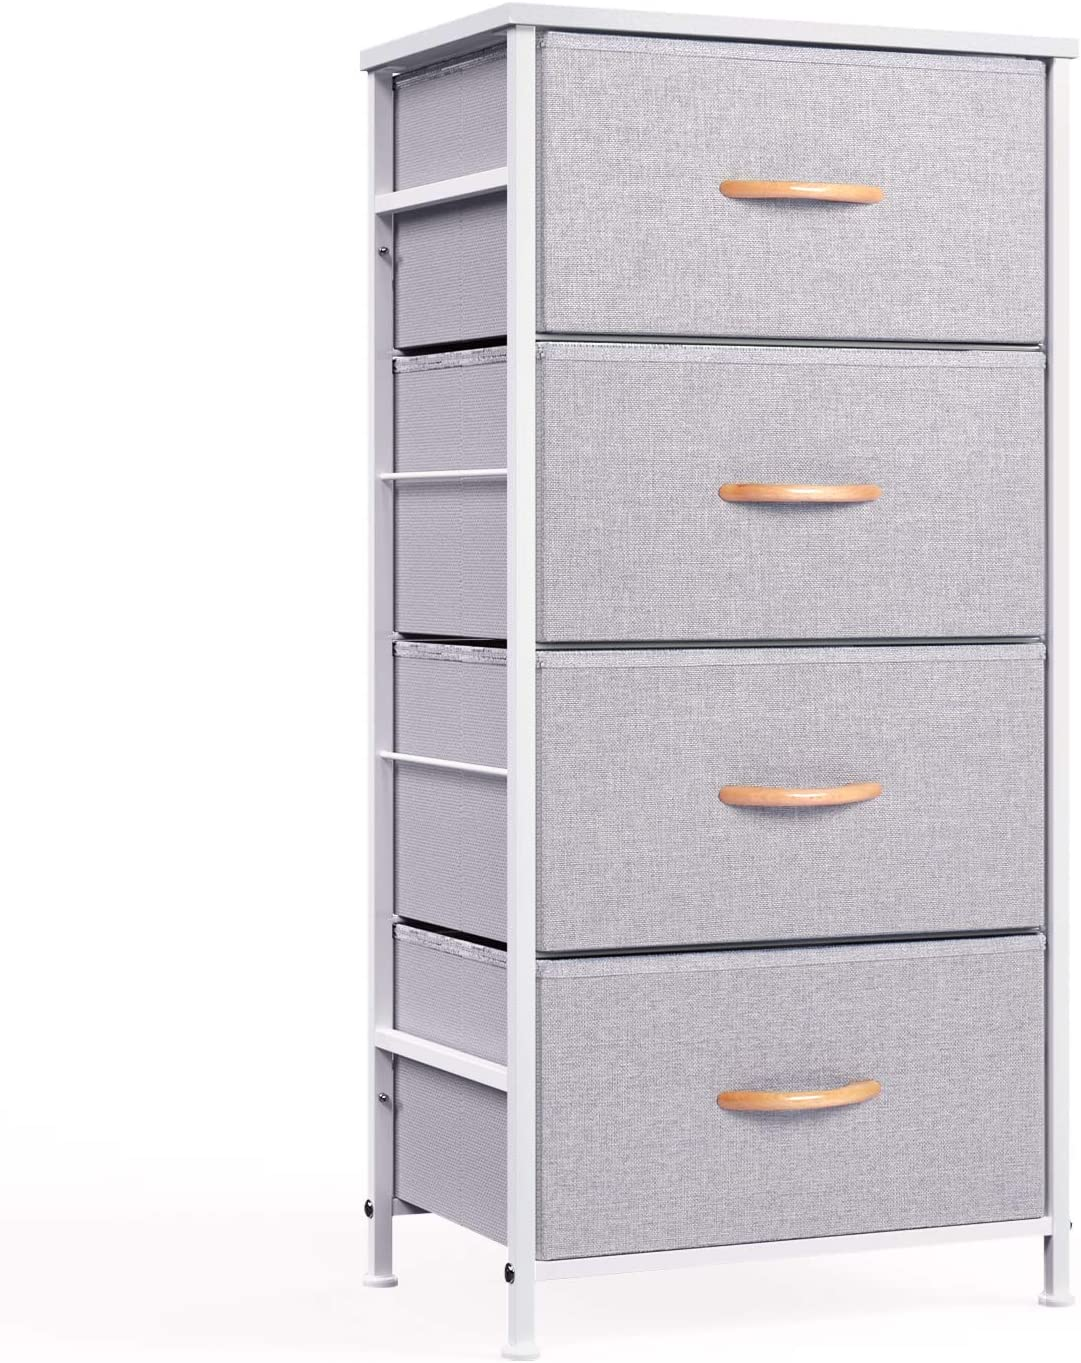 WeHome 4 Drawer Fabric Dresser Storage Tower, Organizer Unit for Bedroom, Closet, Entryway, Hallway, Nursery Room - Gray